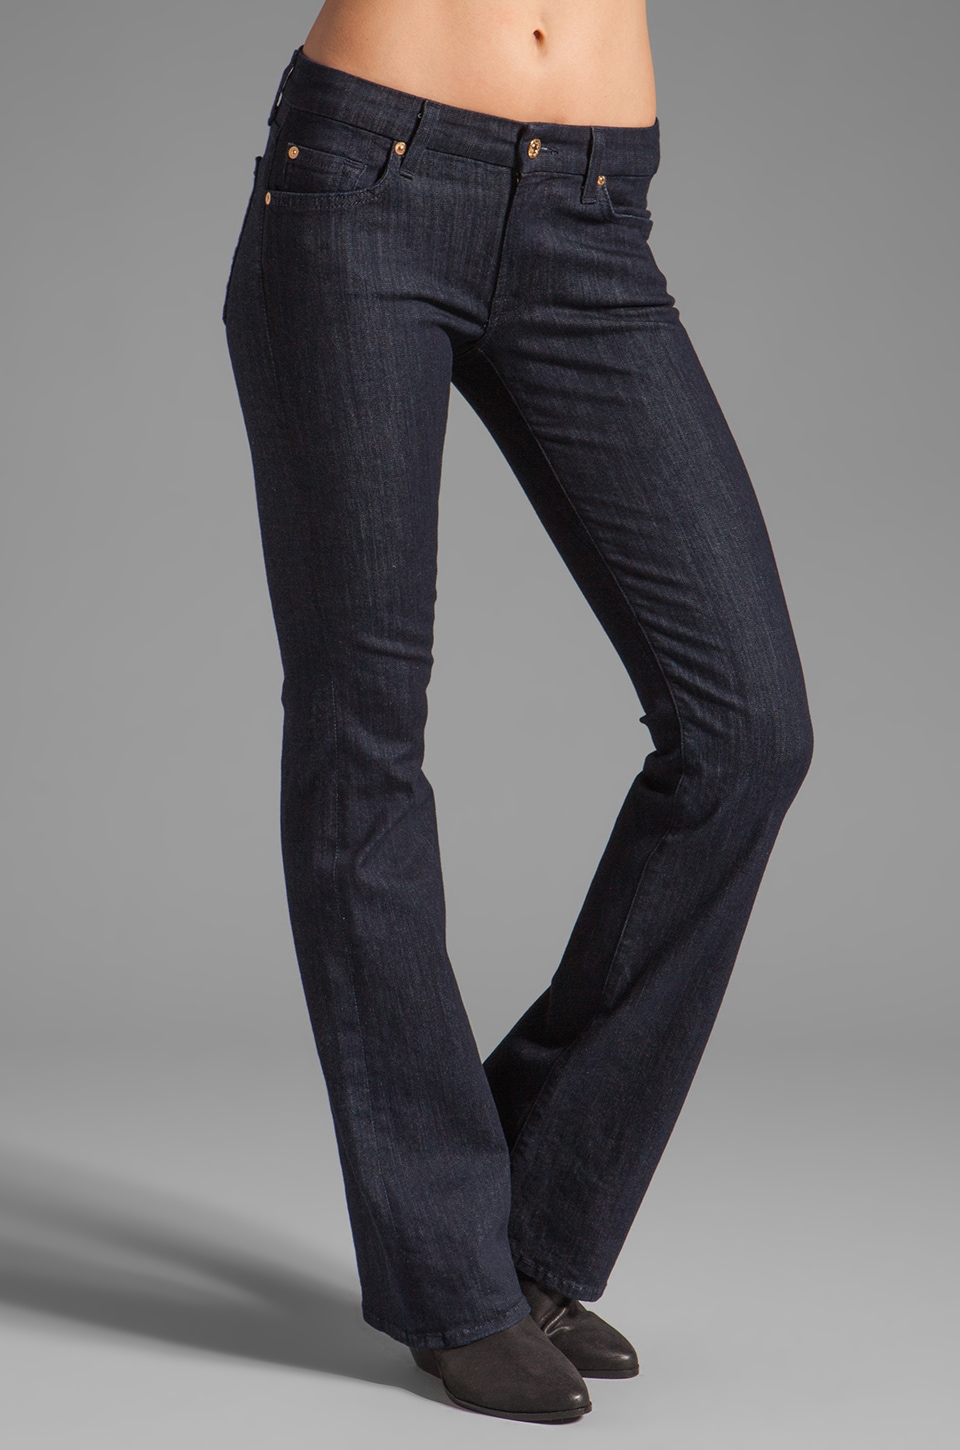 7 For All Mankind Kimmie Bootcut in Slim Illusion Rinse